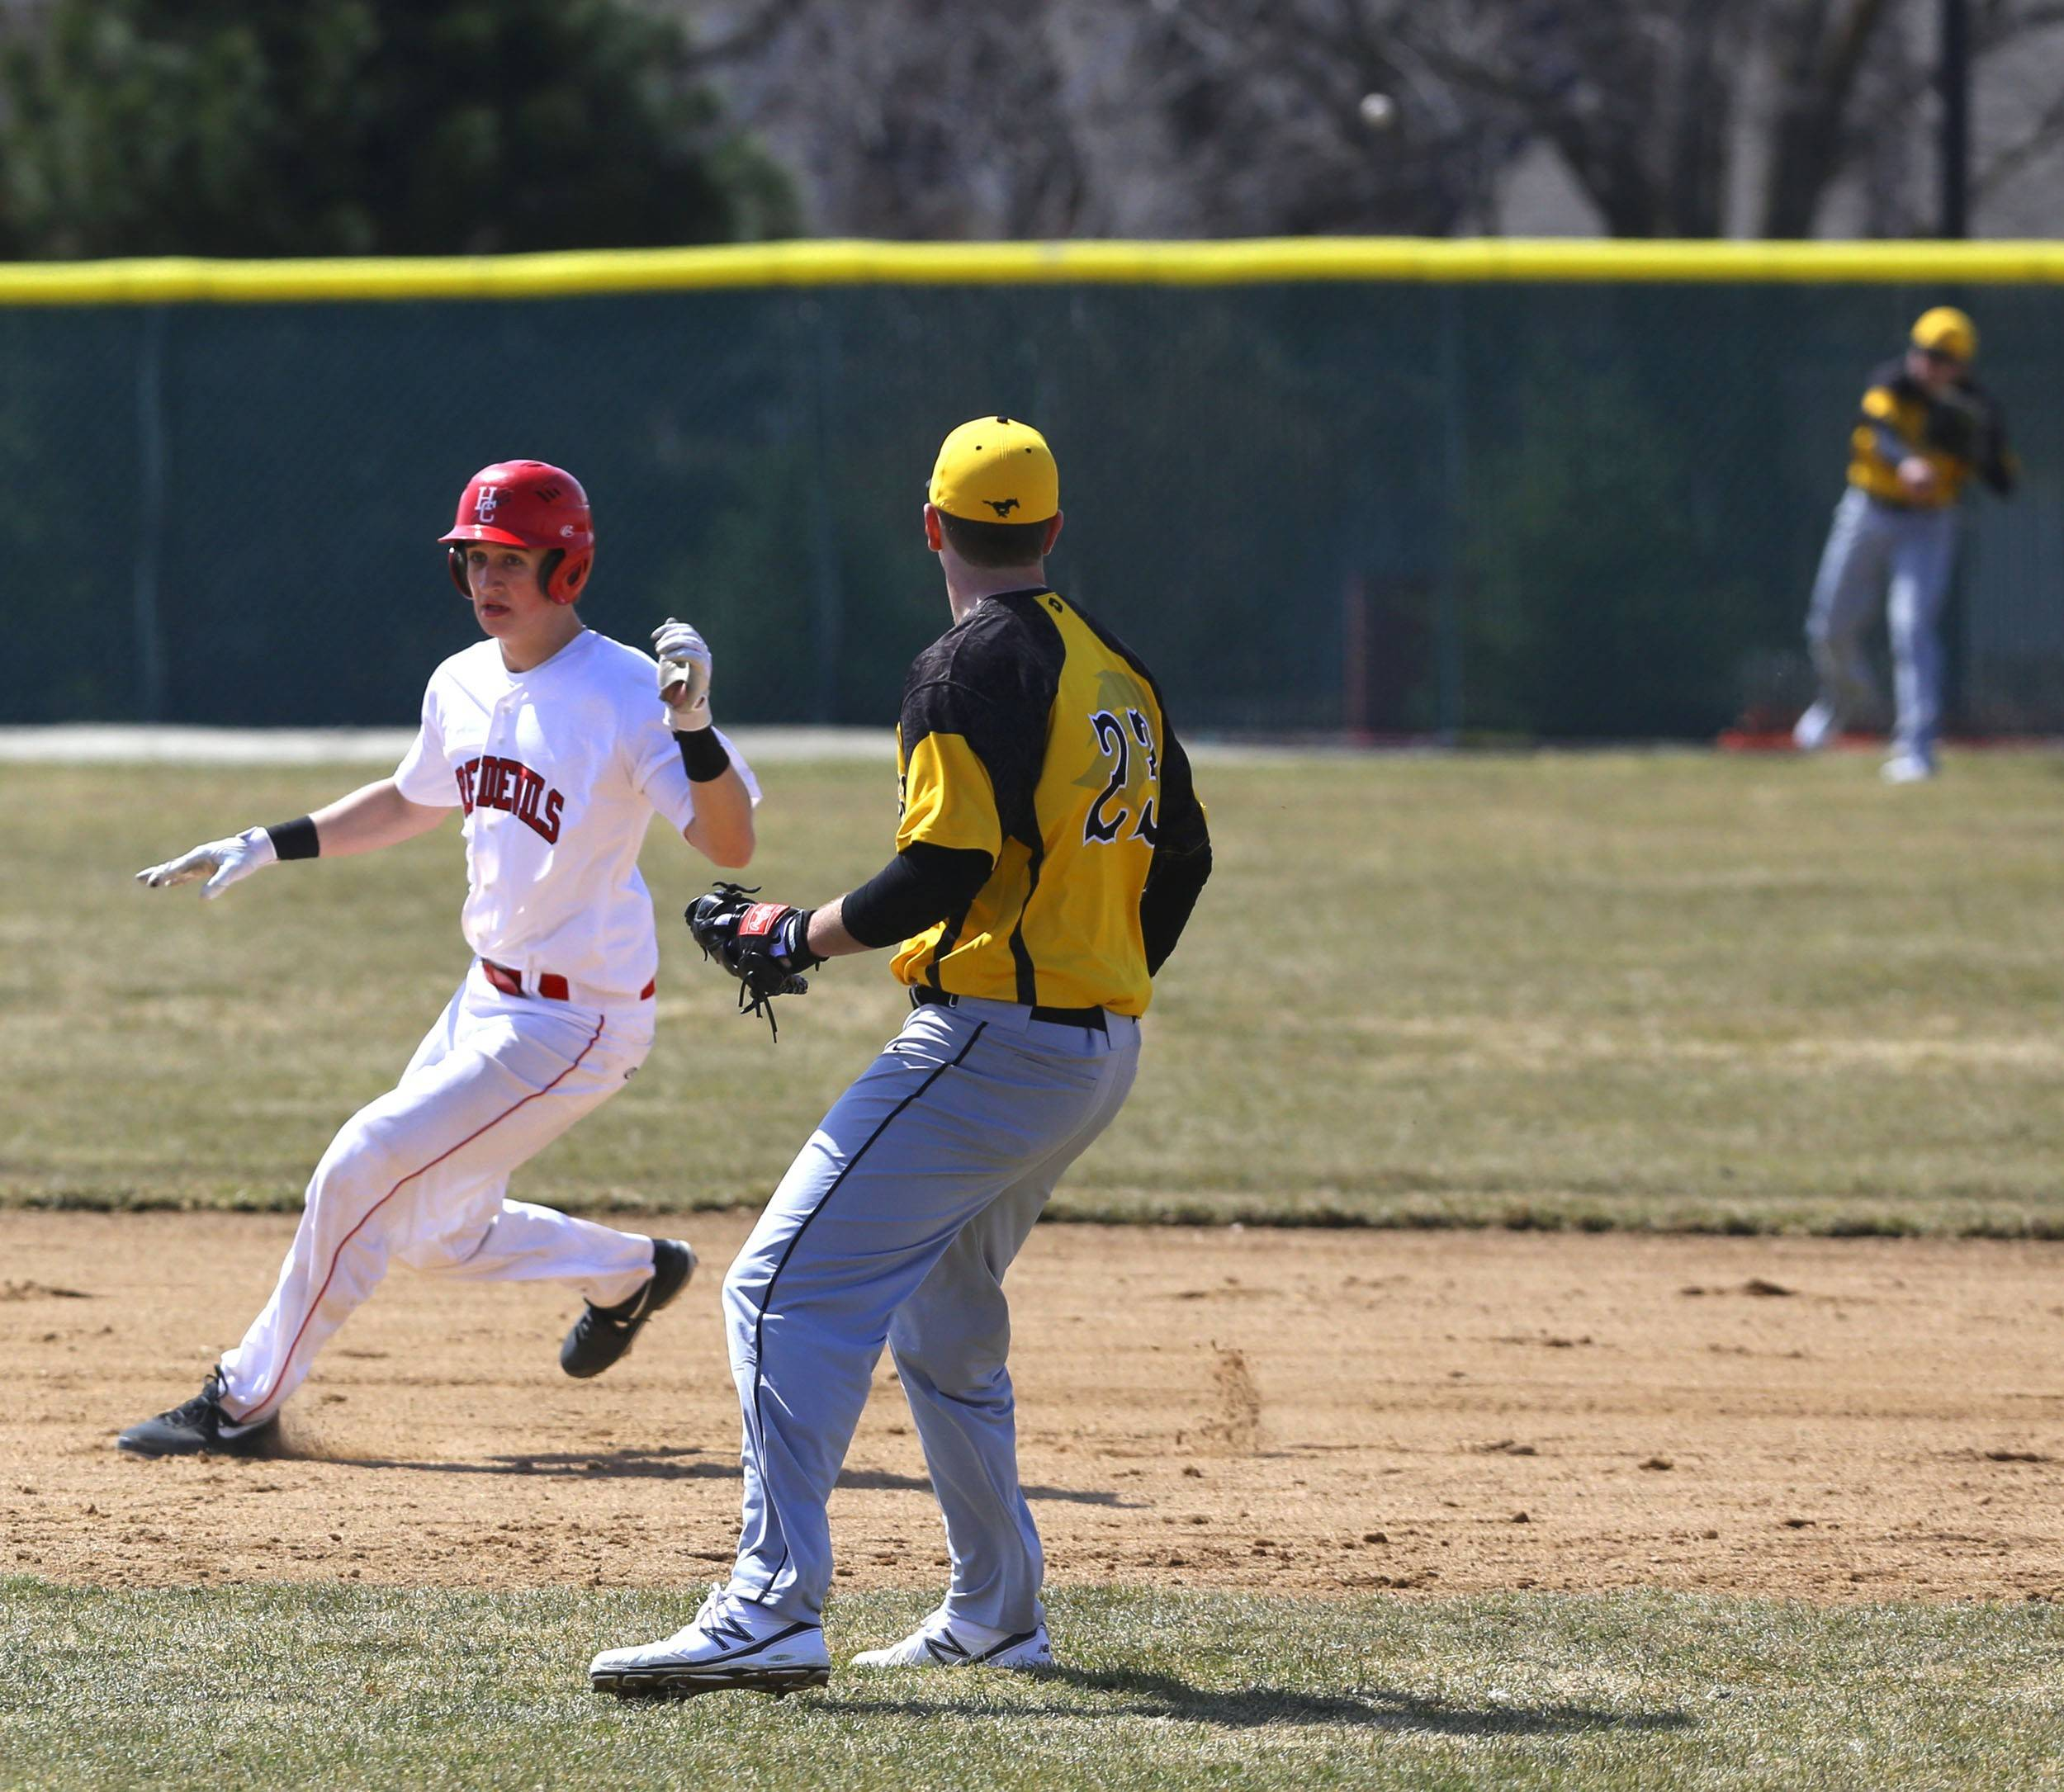 Hinsdale Central's Matt Muellner looks to his third base coach after doubling home the eventual game winning runs during a 7-4 home opener win over Metea Valley.